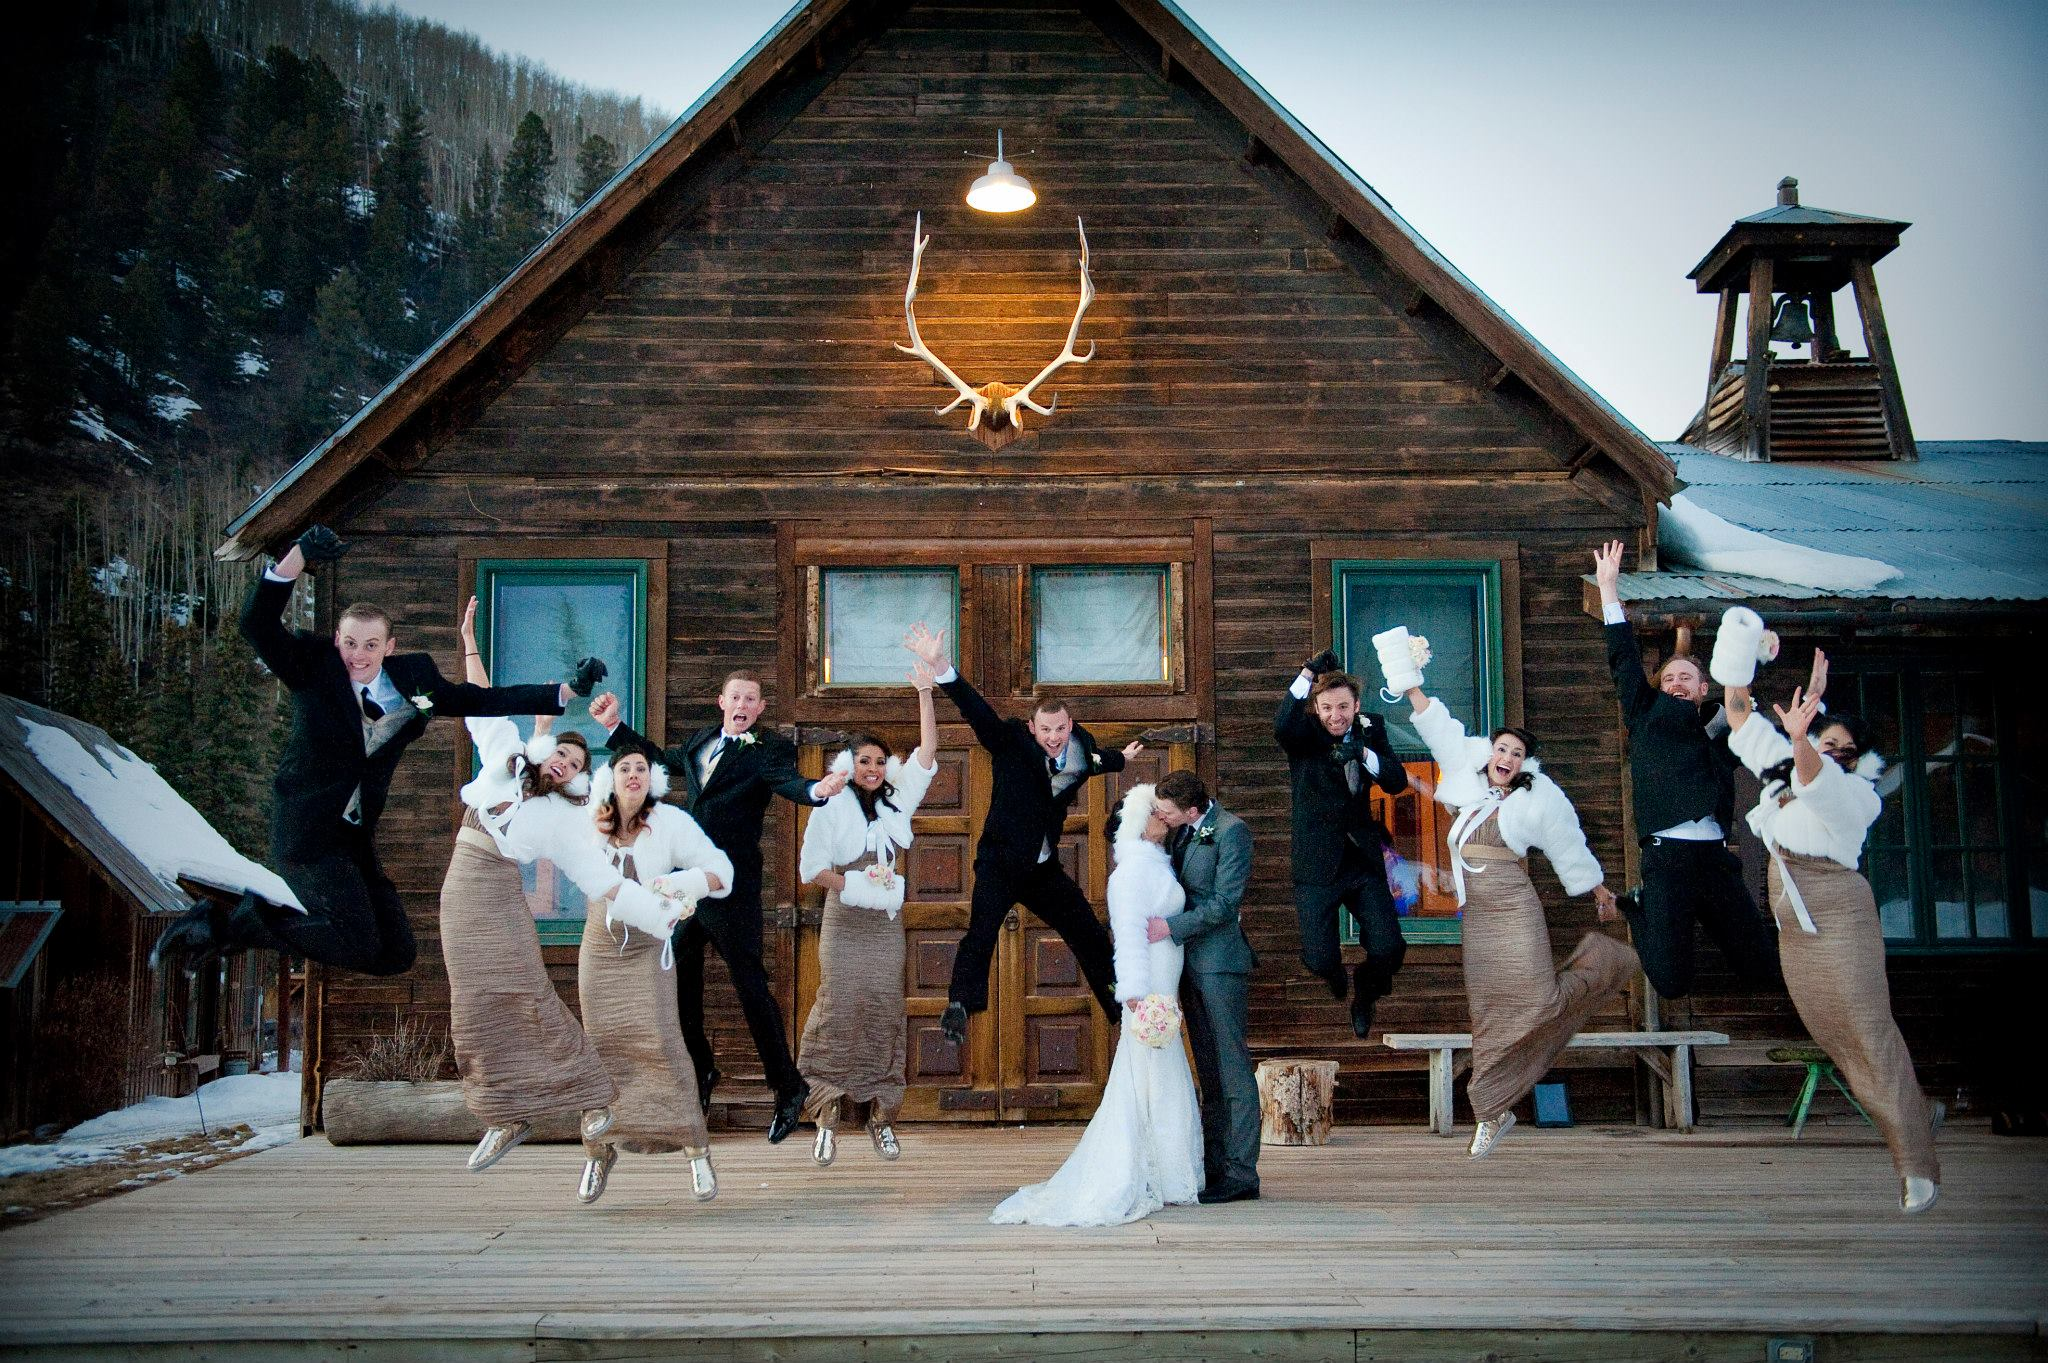 outdoor winter wedding at dunton hot springs in colorado